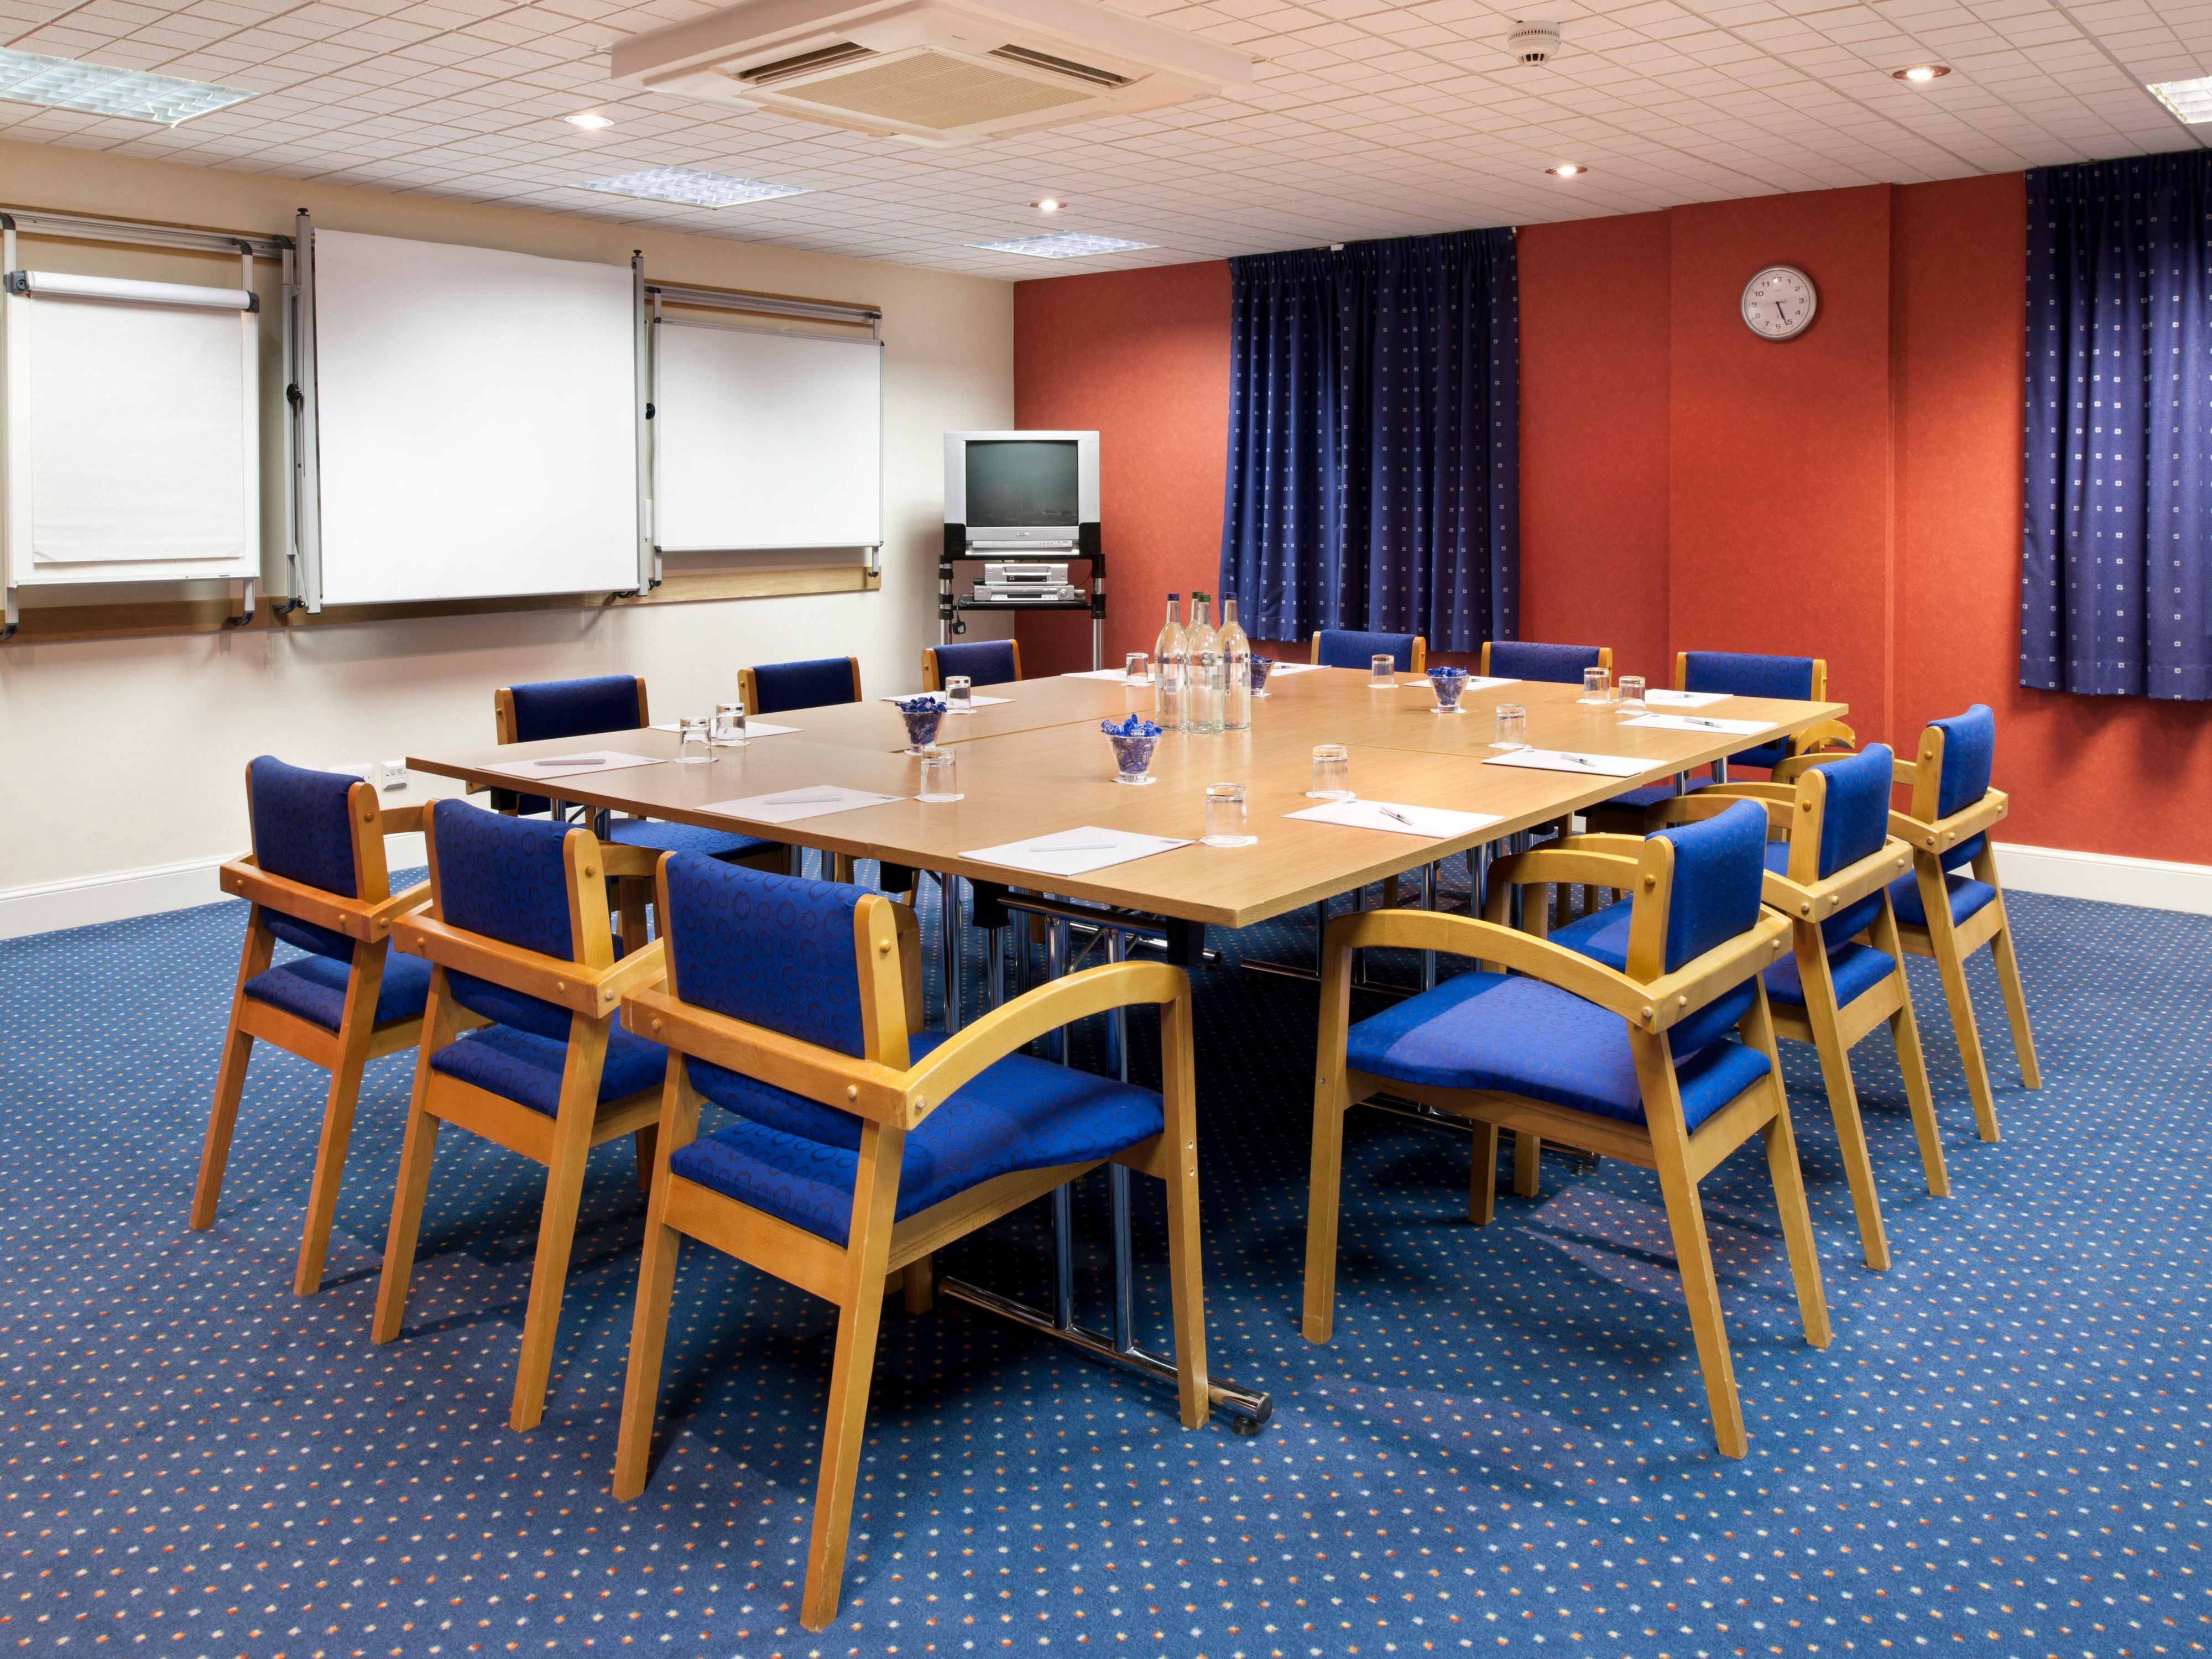 Training course or board meeting, we can help with that...